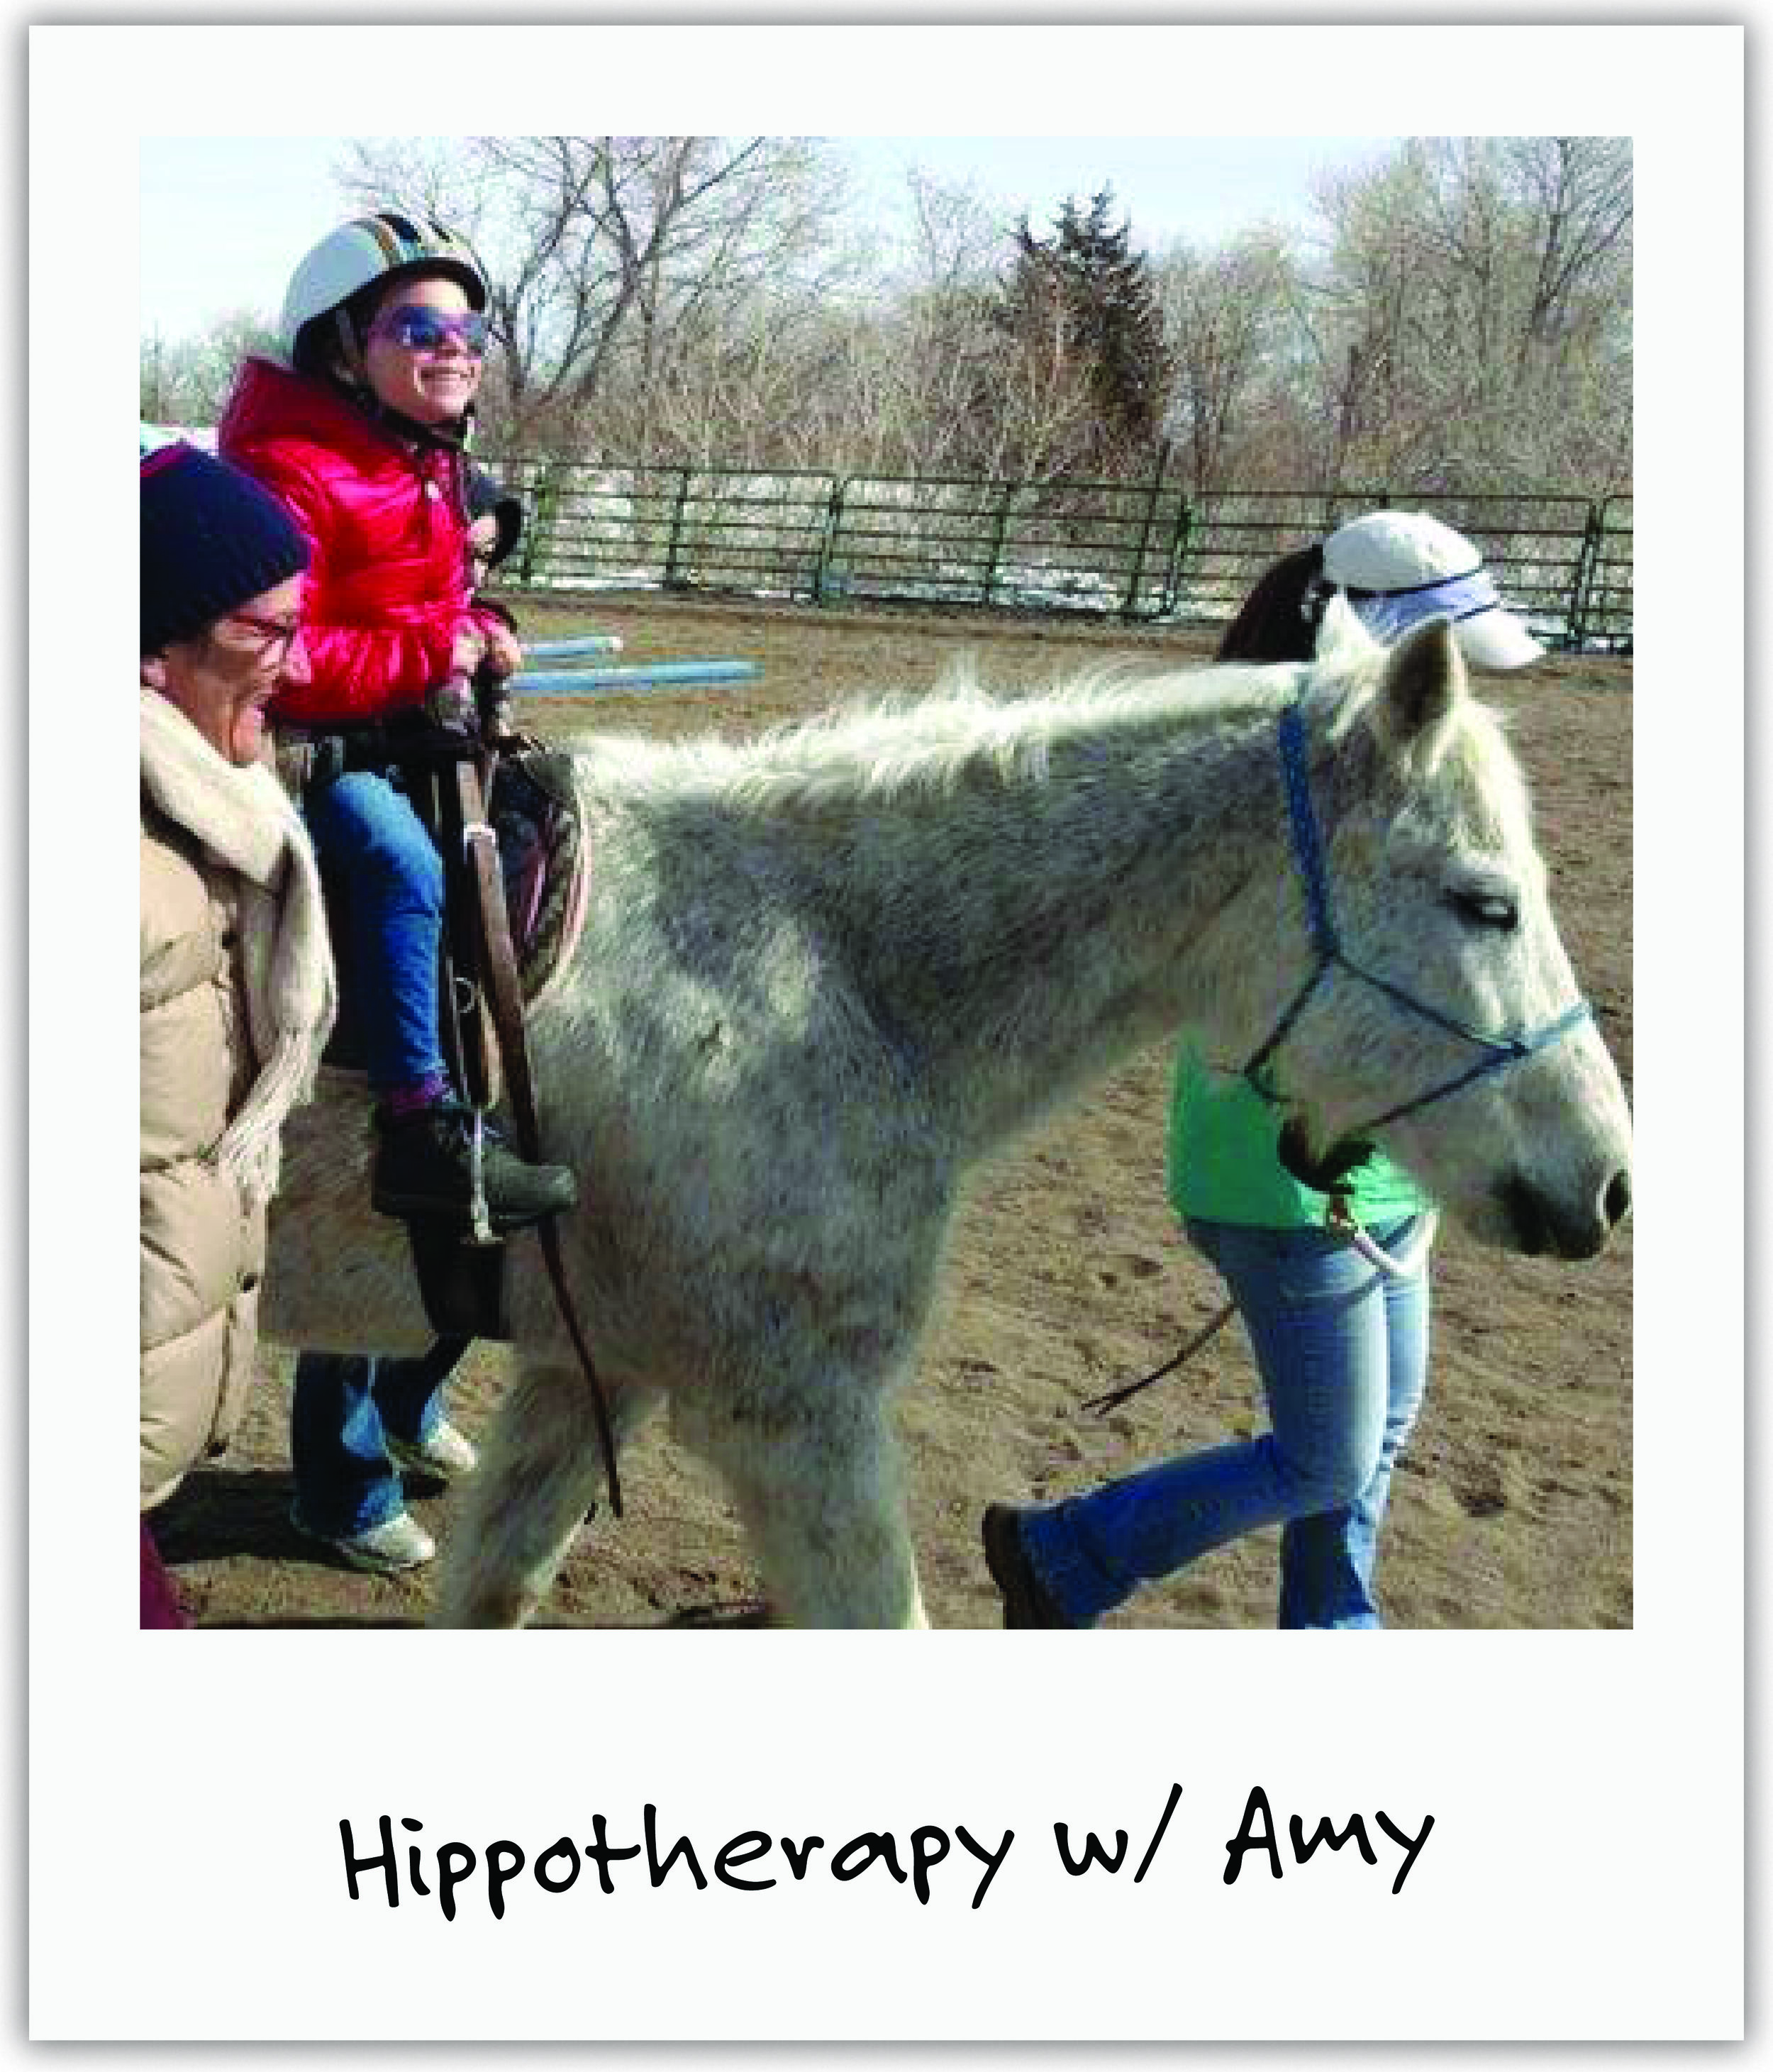 Front Range Hippotherapy heard of Mila's fight and offered weekly riding sessions to keep her strong and stimulate her senses.